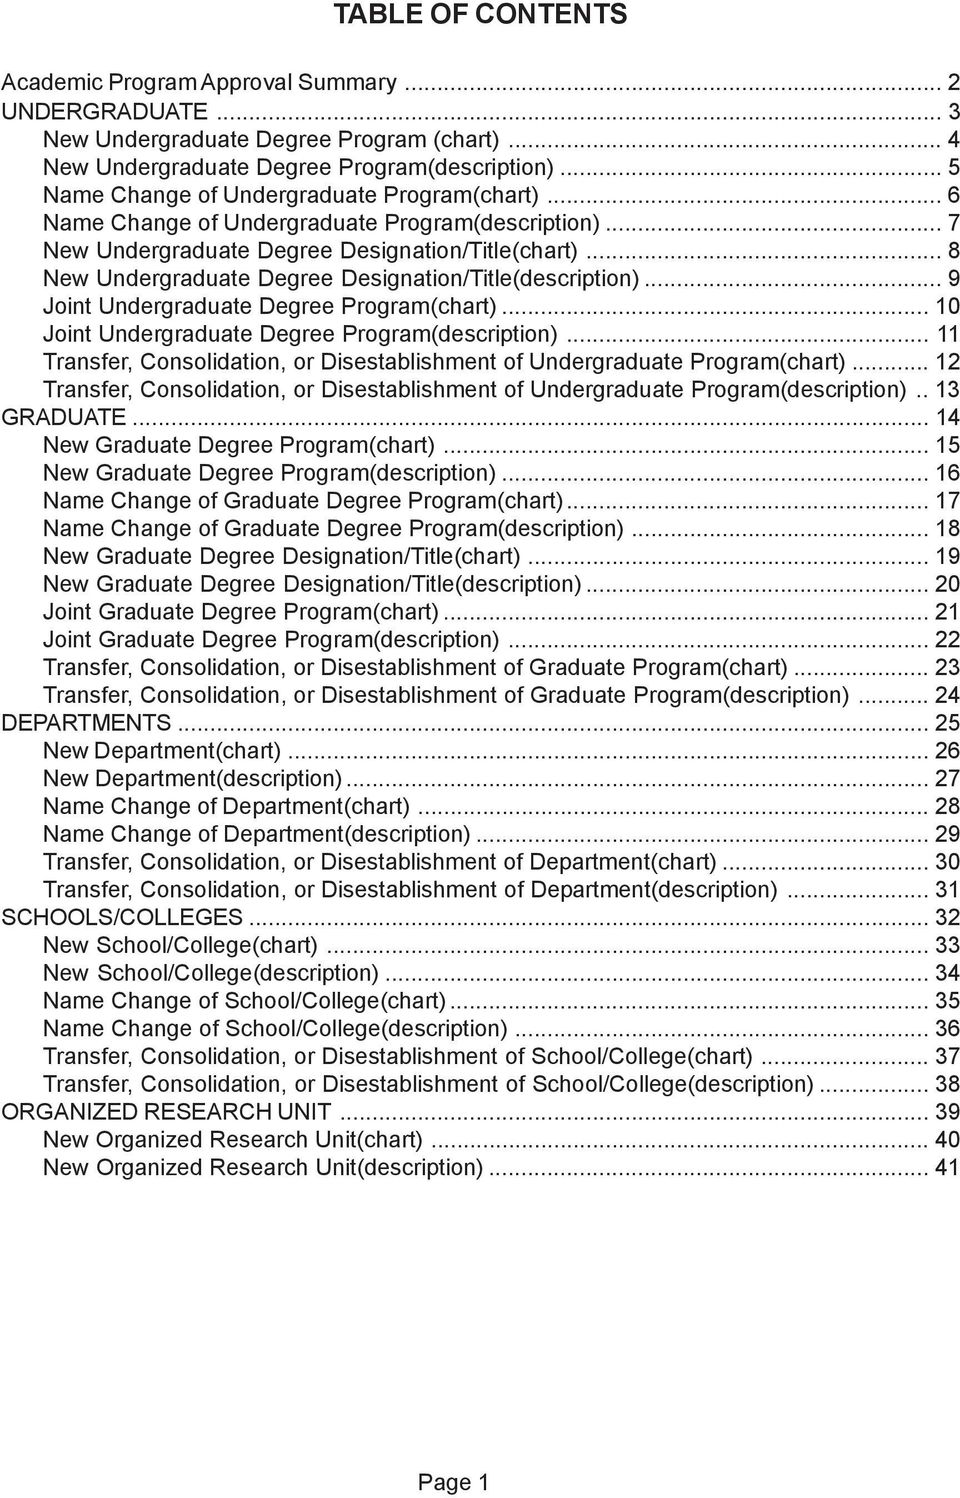 .. 8 New Undergraduate Degree Designation/Title(description)... 9 Joint Undergraduate Degree Program(chart)... 10 Joint Undergraduate Degree Program(description).